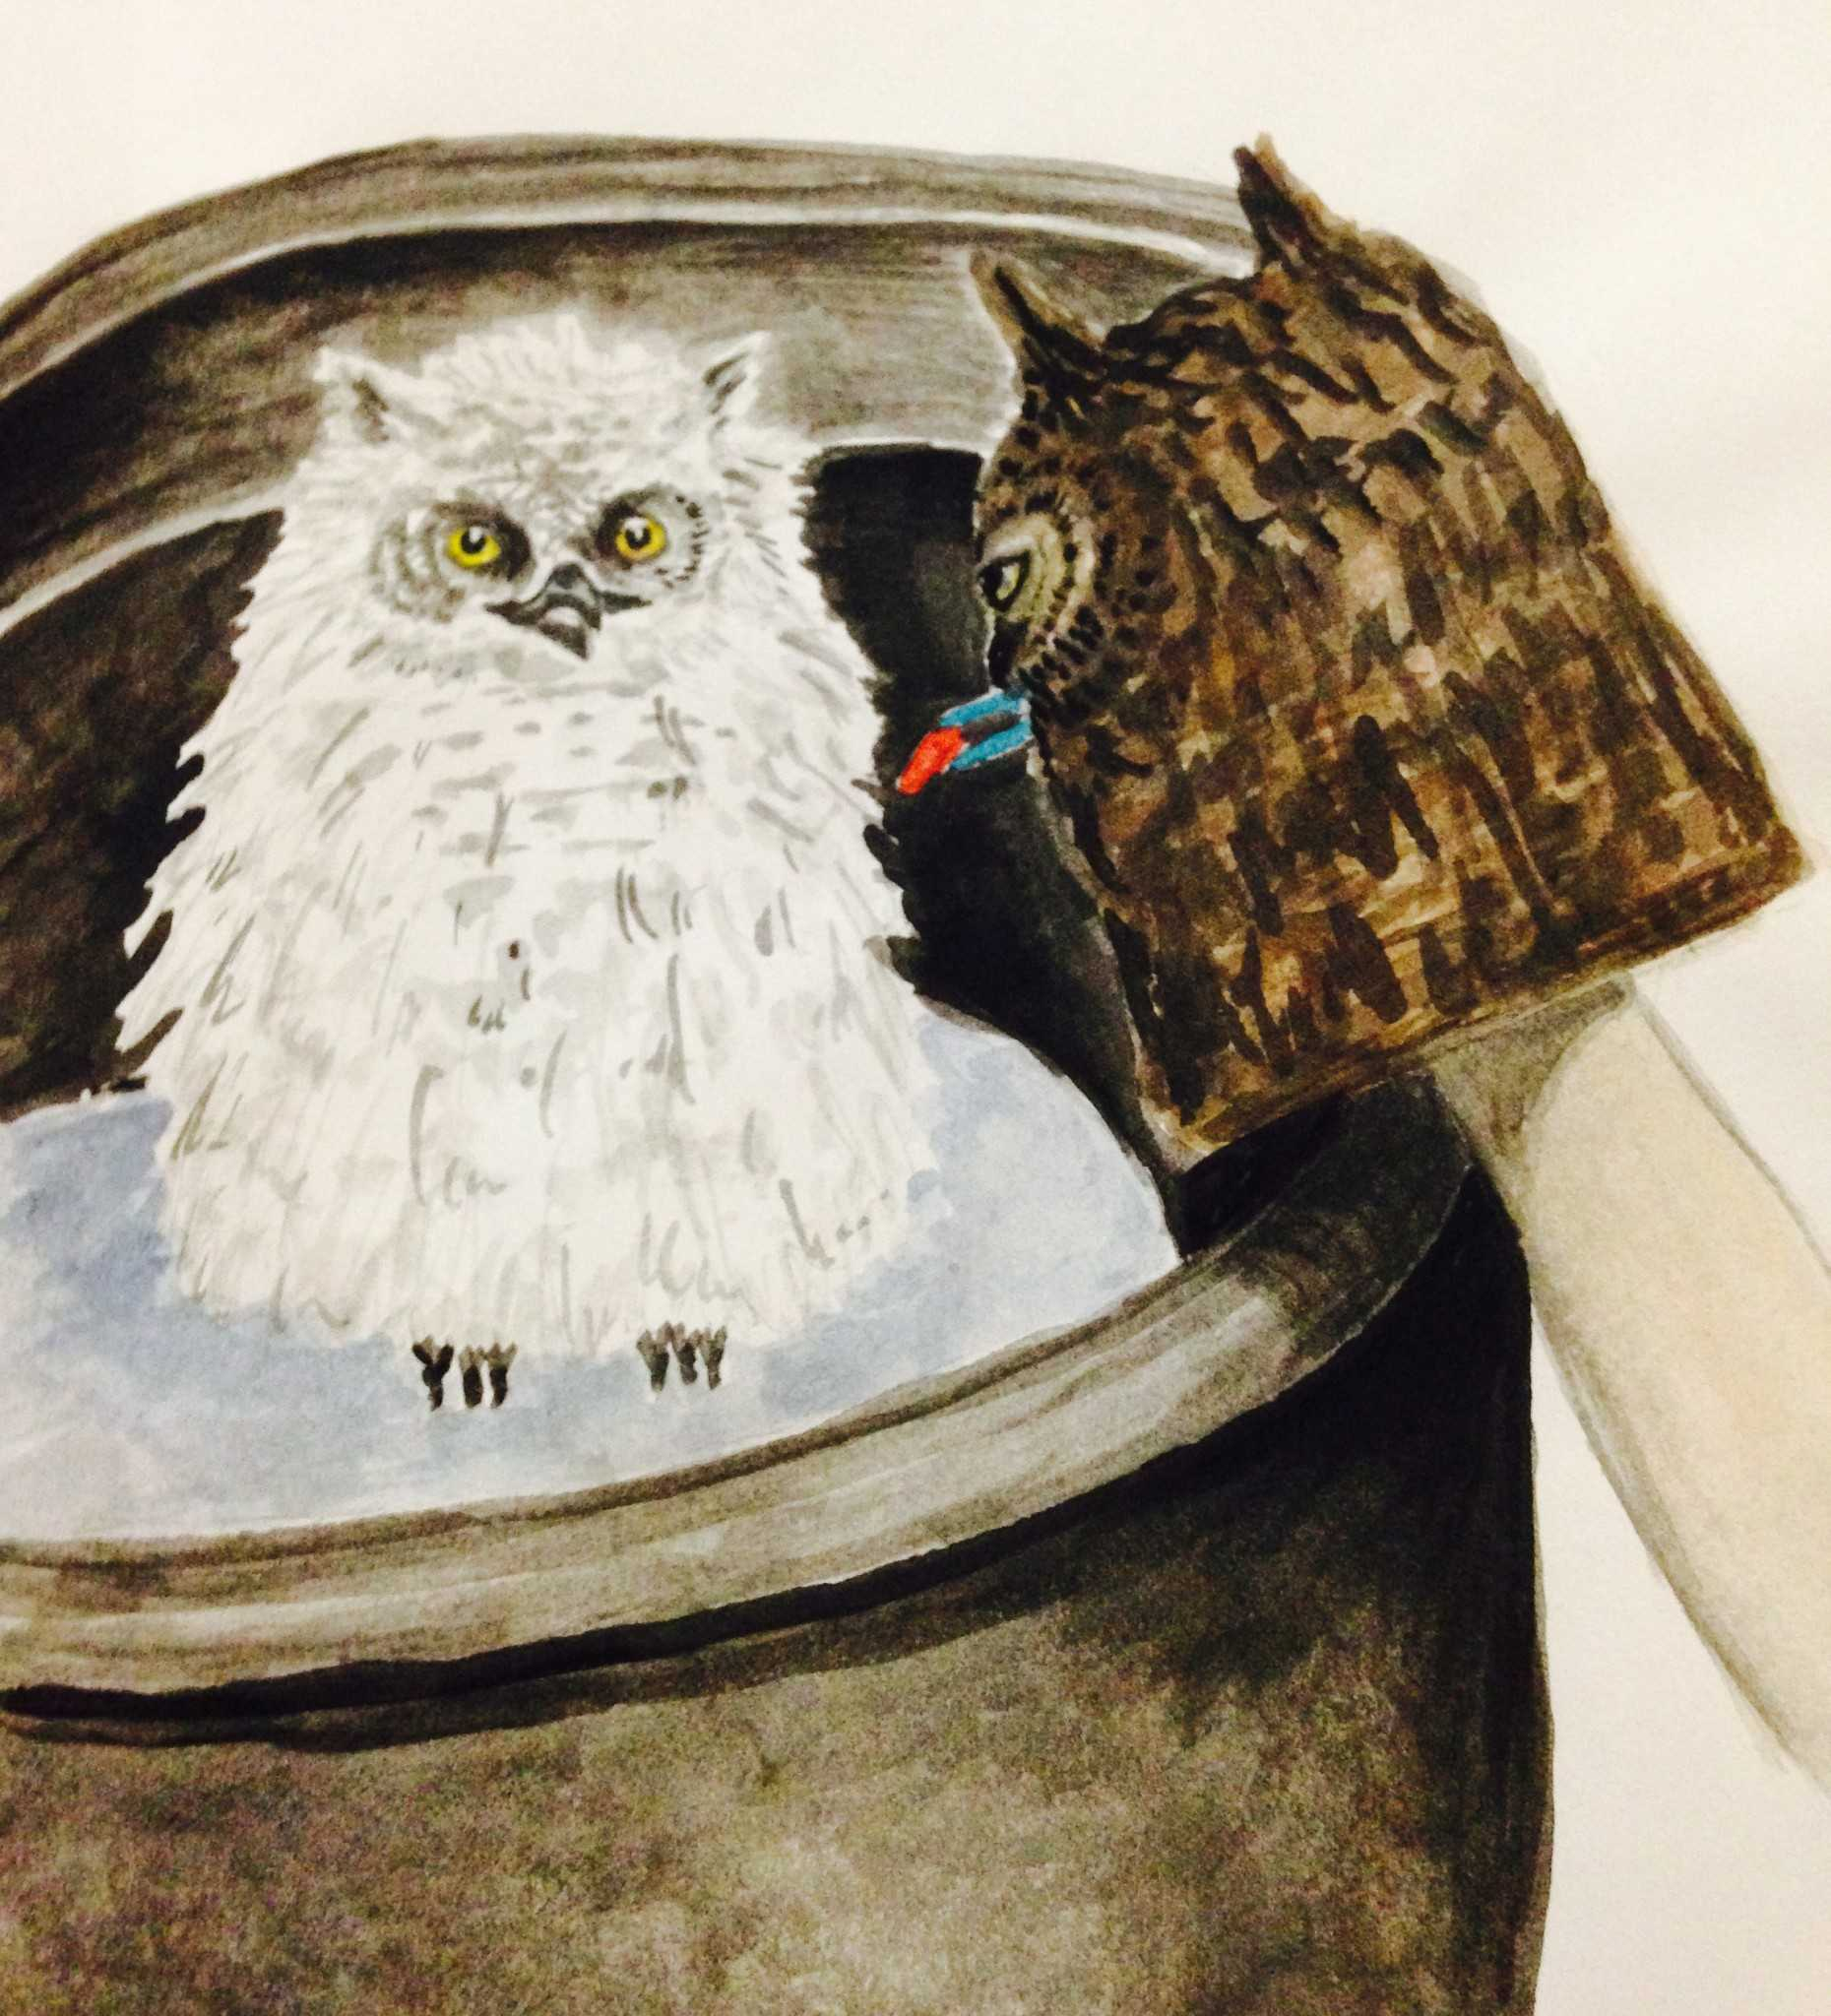 Watercolor sketch feeding a Great Horned Owlet with a puppet by Victoria Dixie Crowe. (2002)